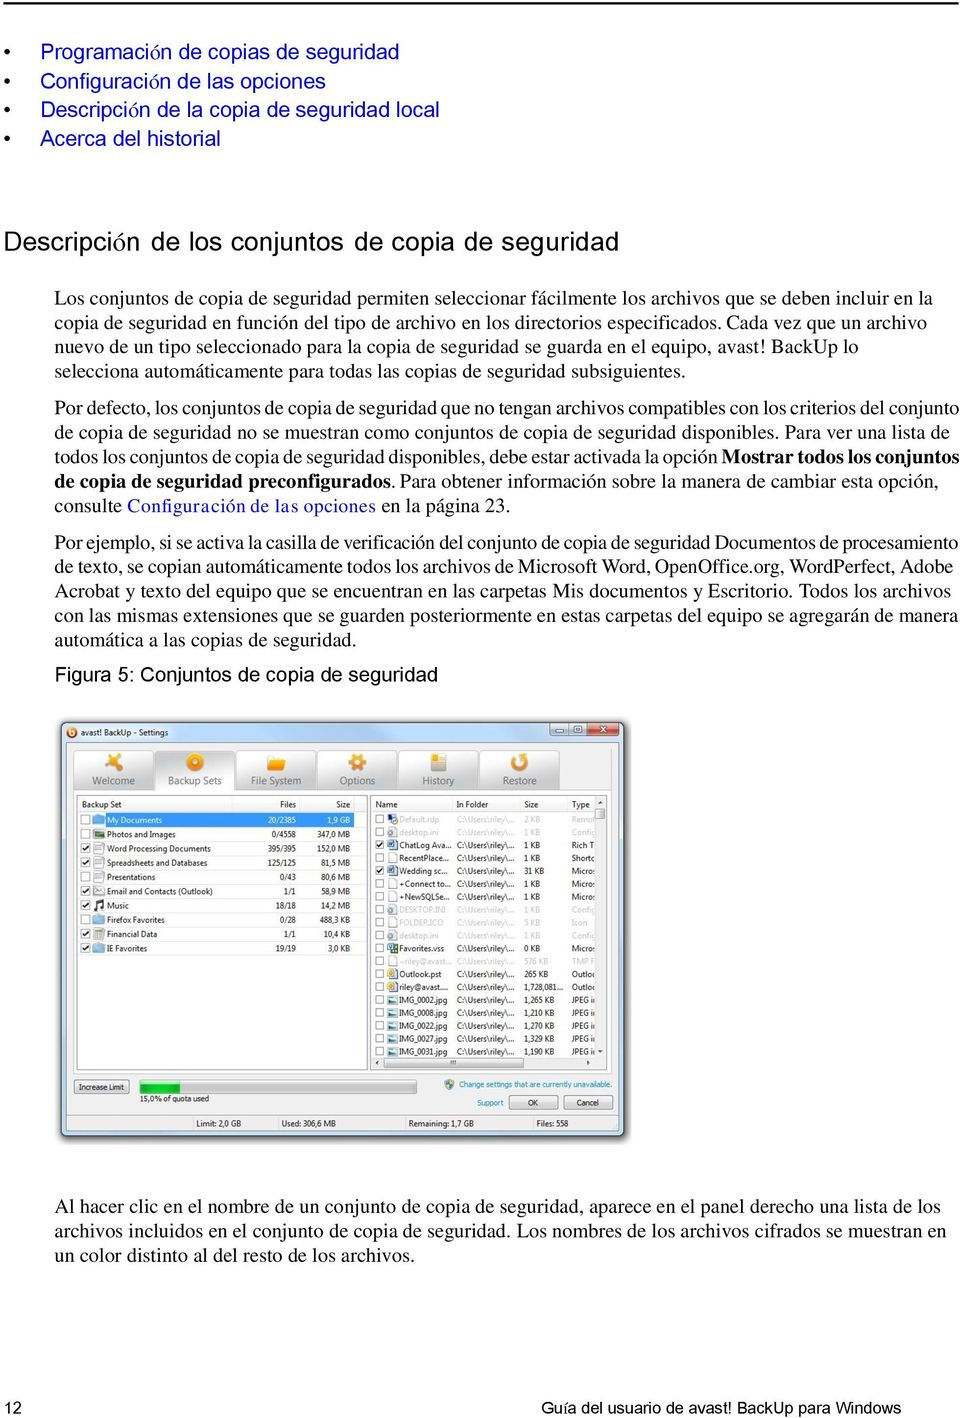 Guía del usuario de avast! BackUp para Windows - PDF